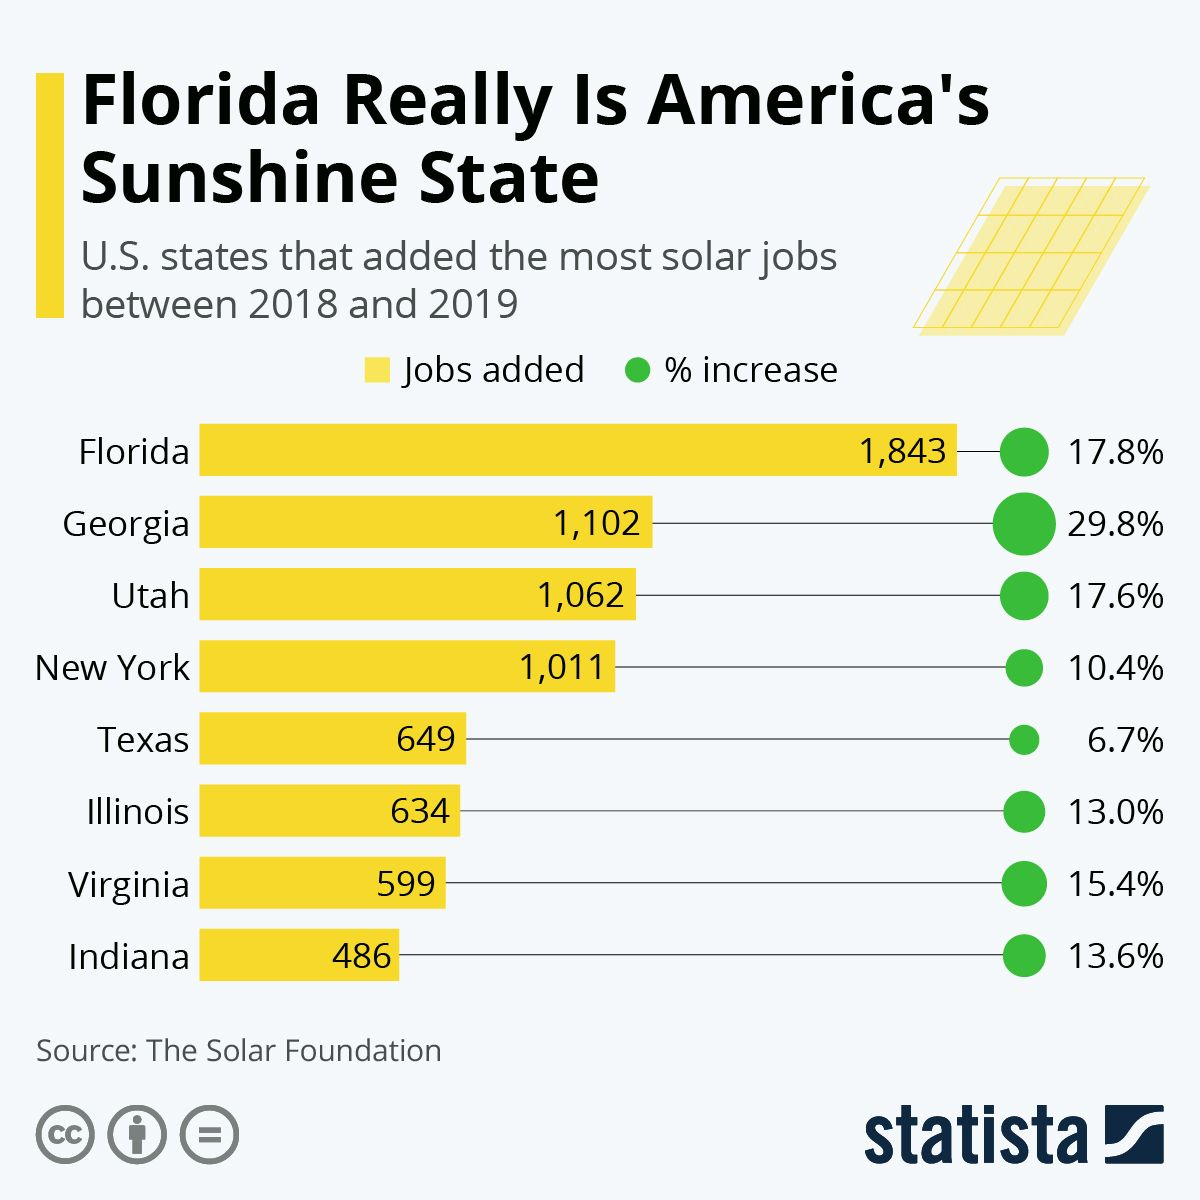 Infographic Florida Really Is America's Sunshine State in